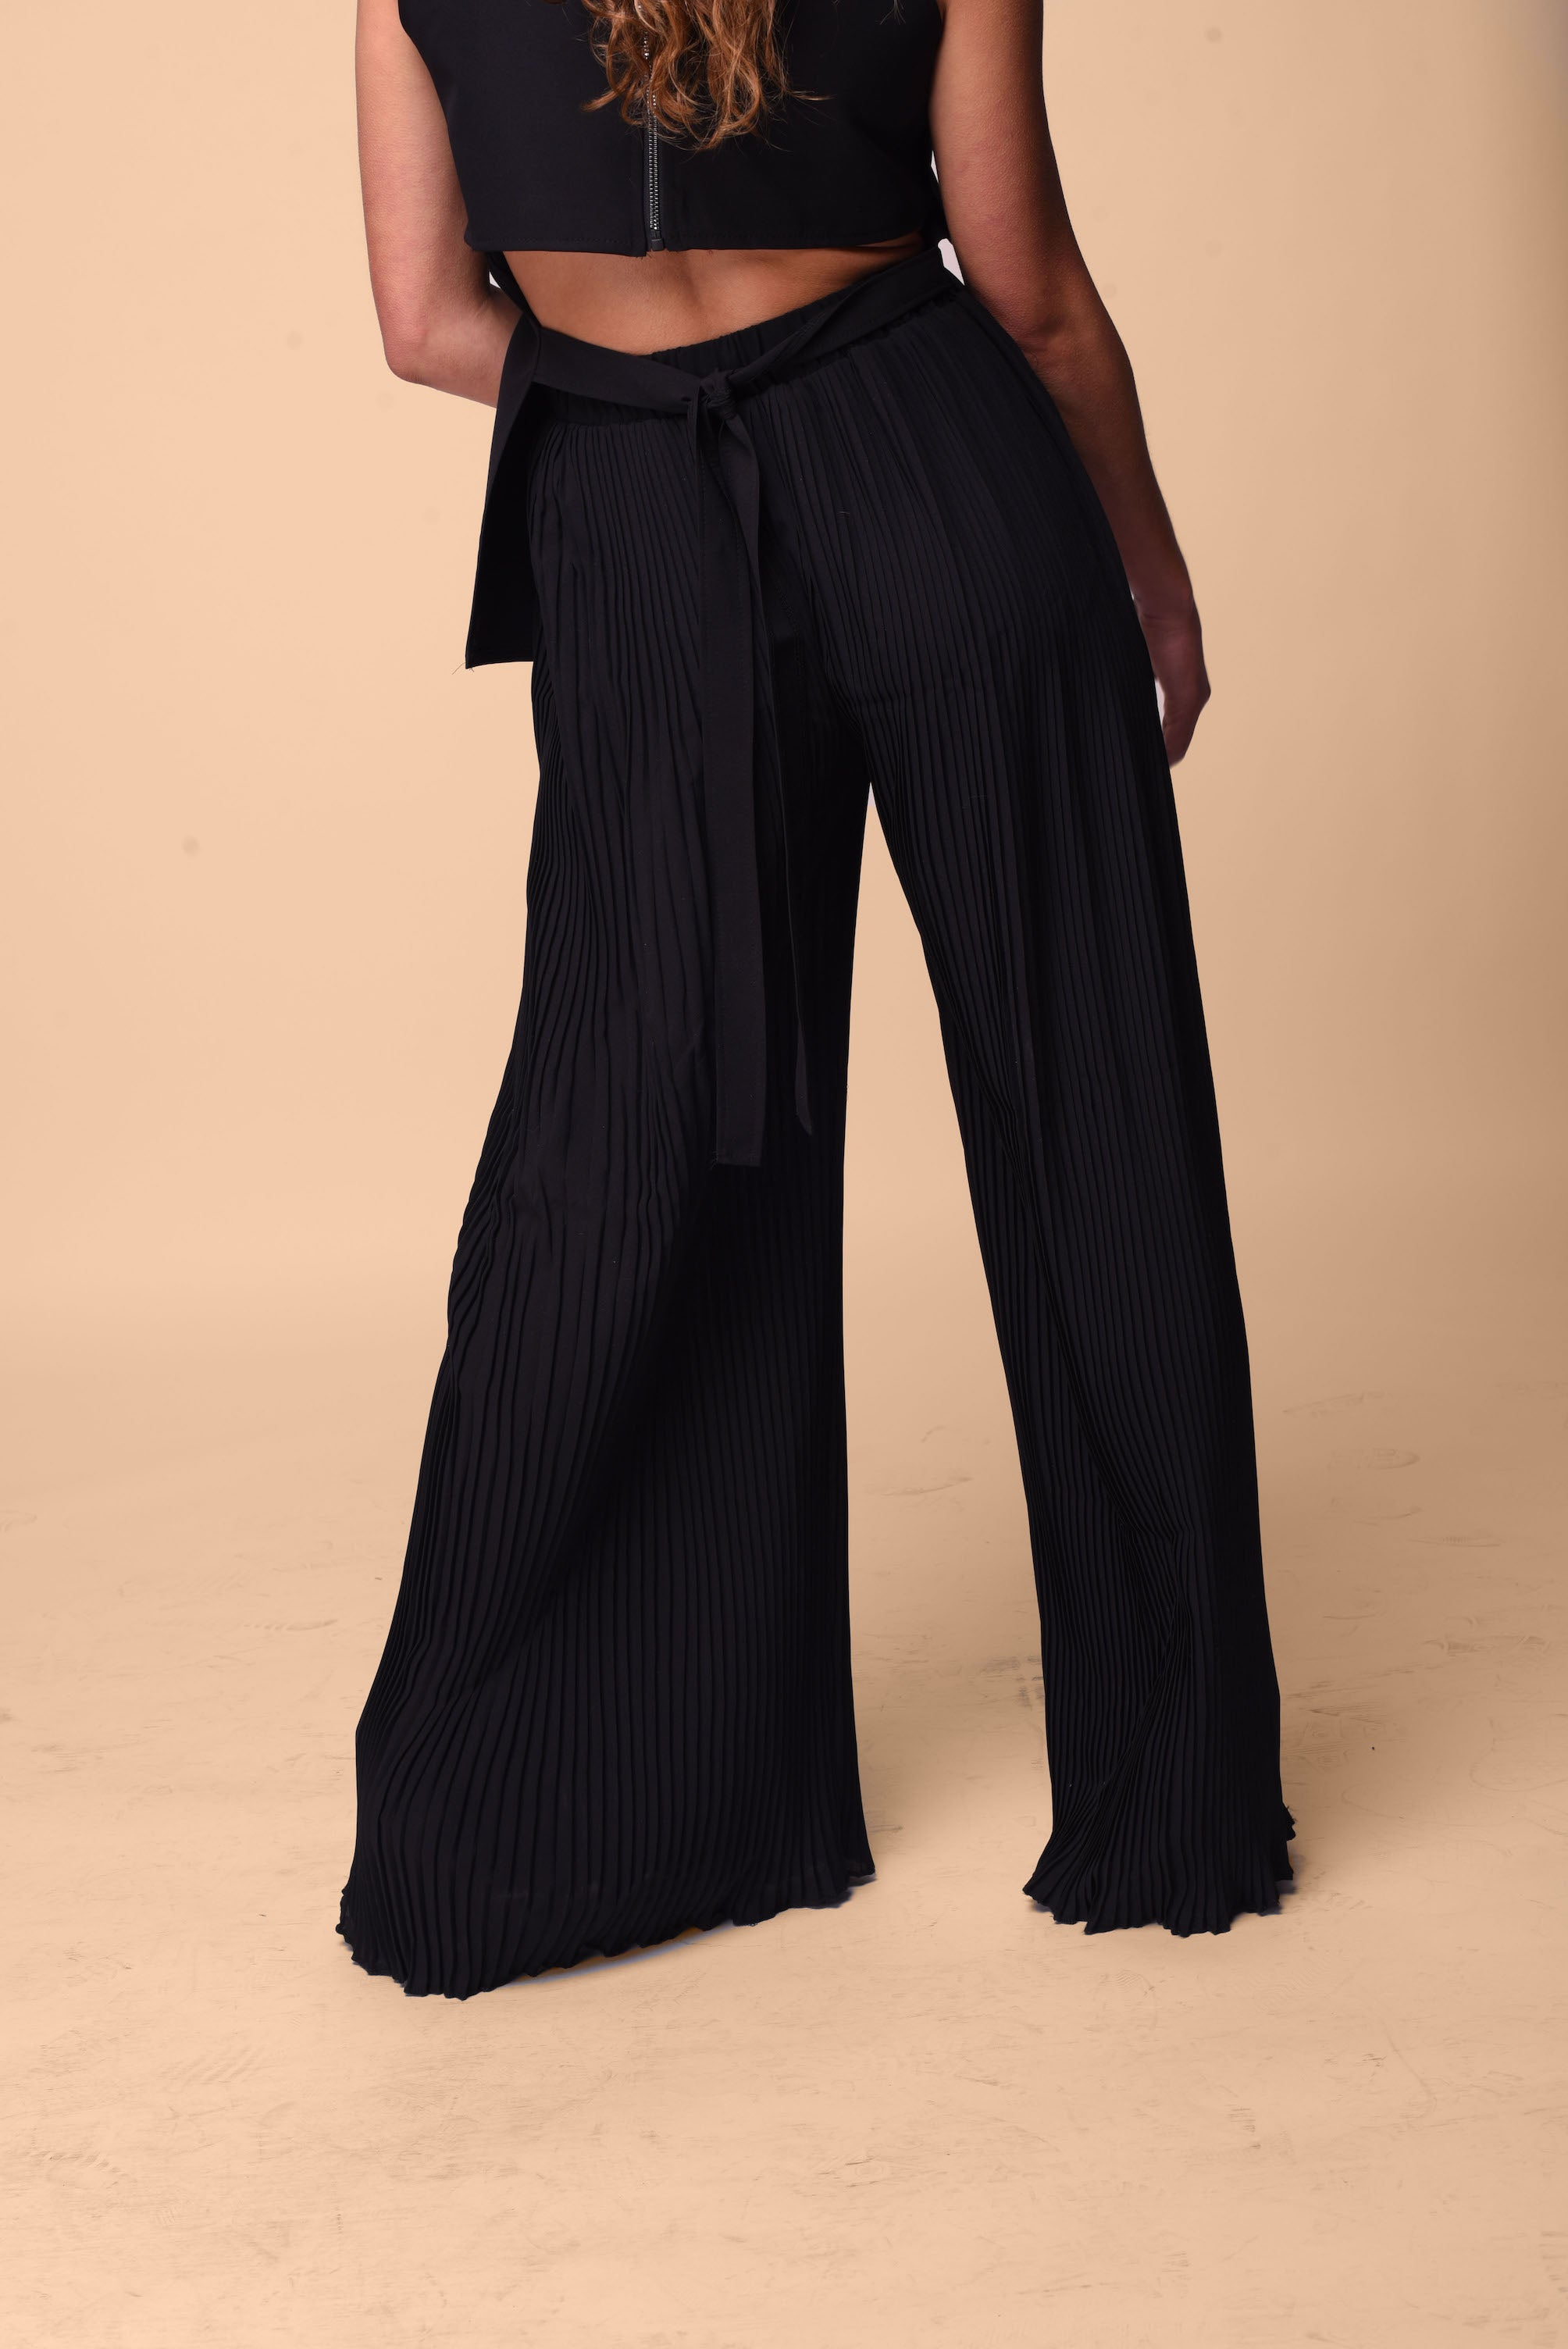 Pleated pants in black